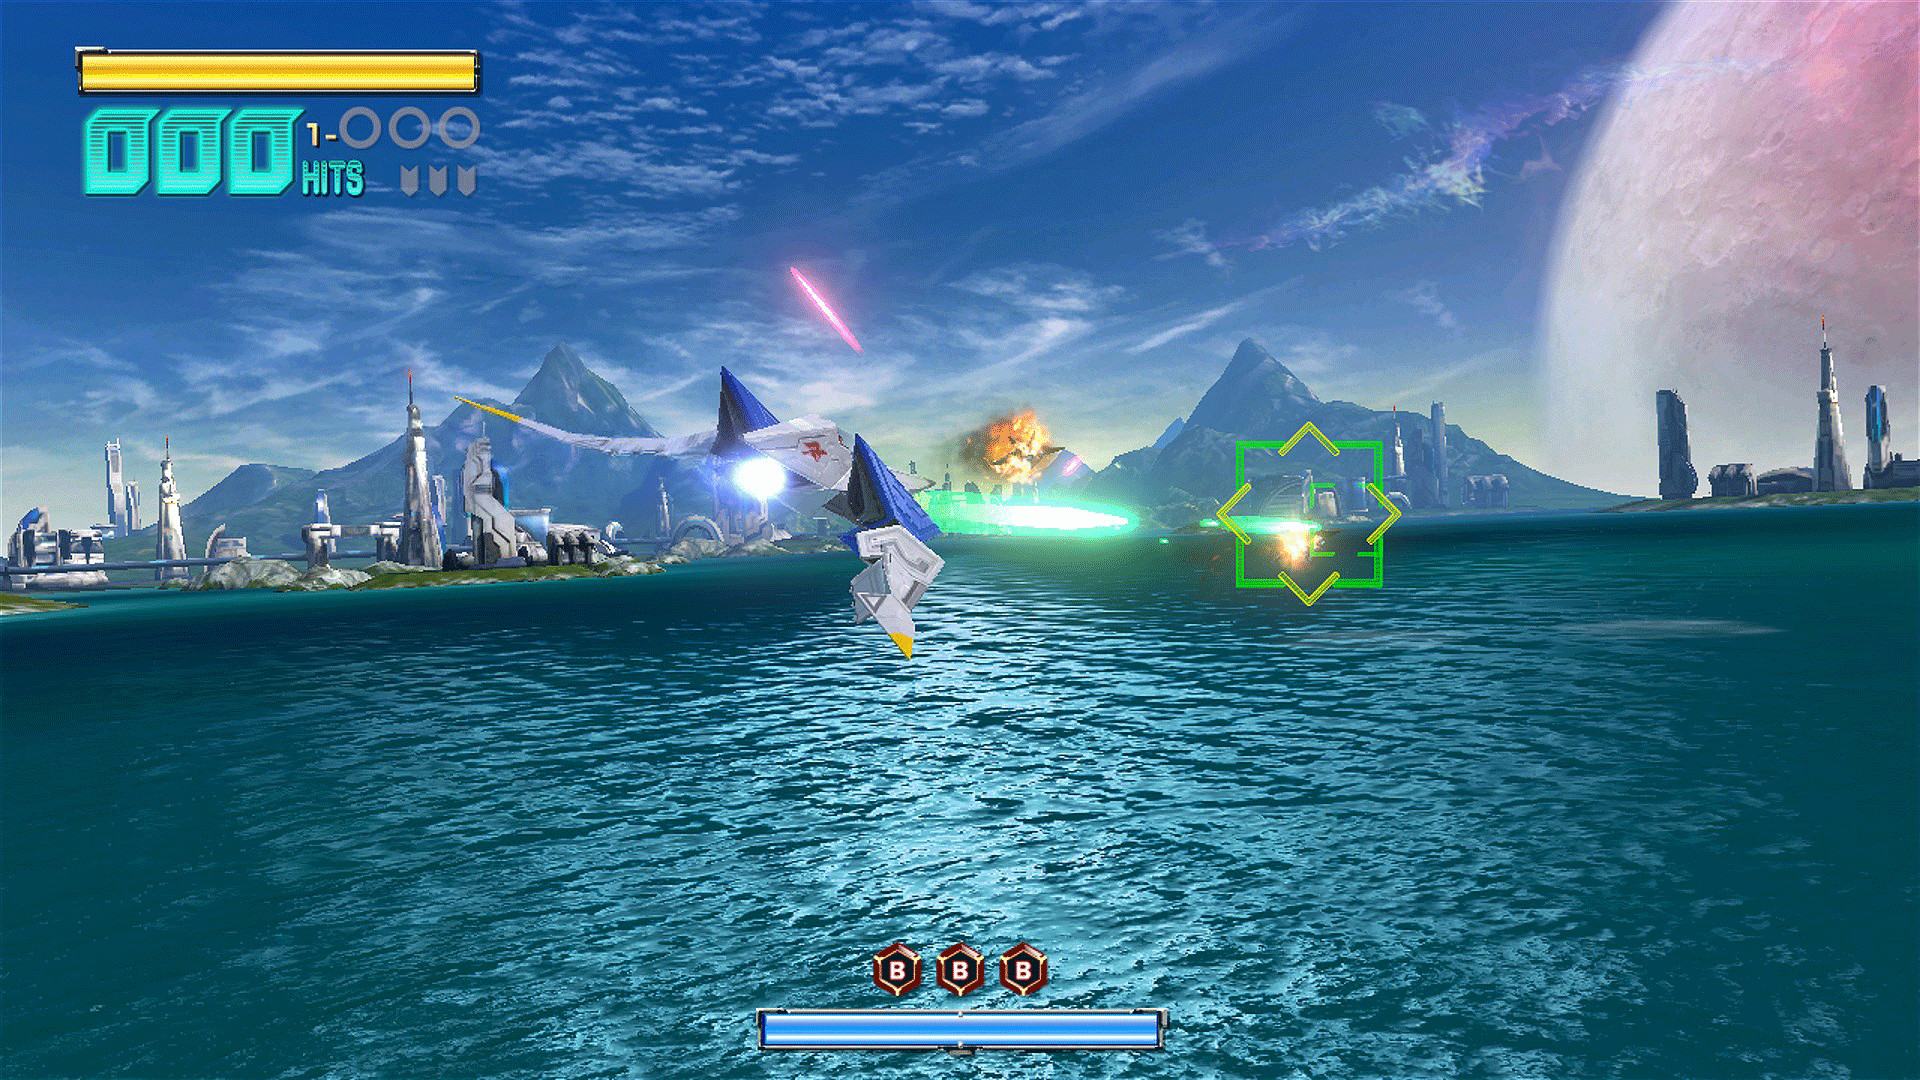 1920x1080 Nintendo's 'Star Fox Zero' is one of a kind, but is it playable? - LA Times